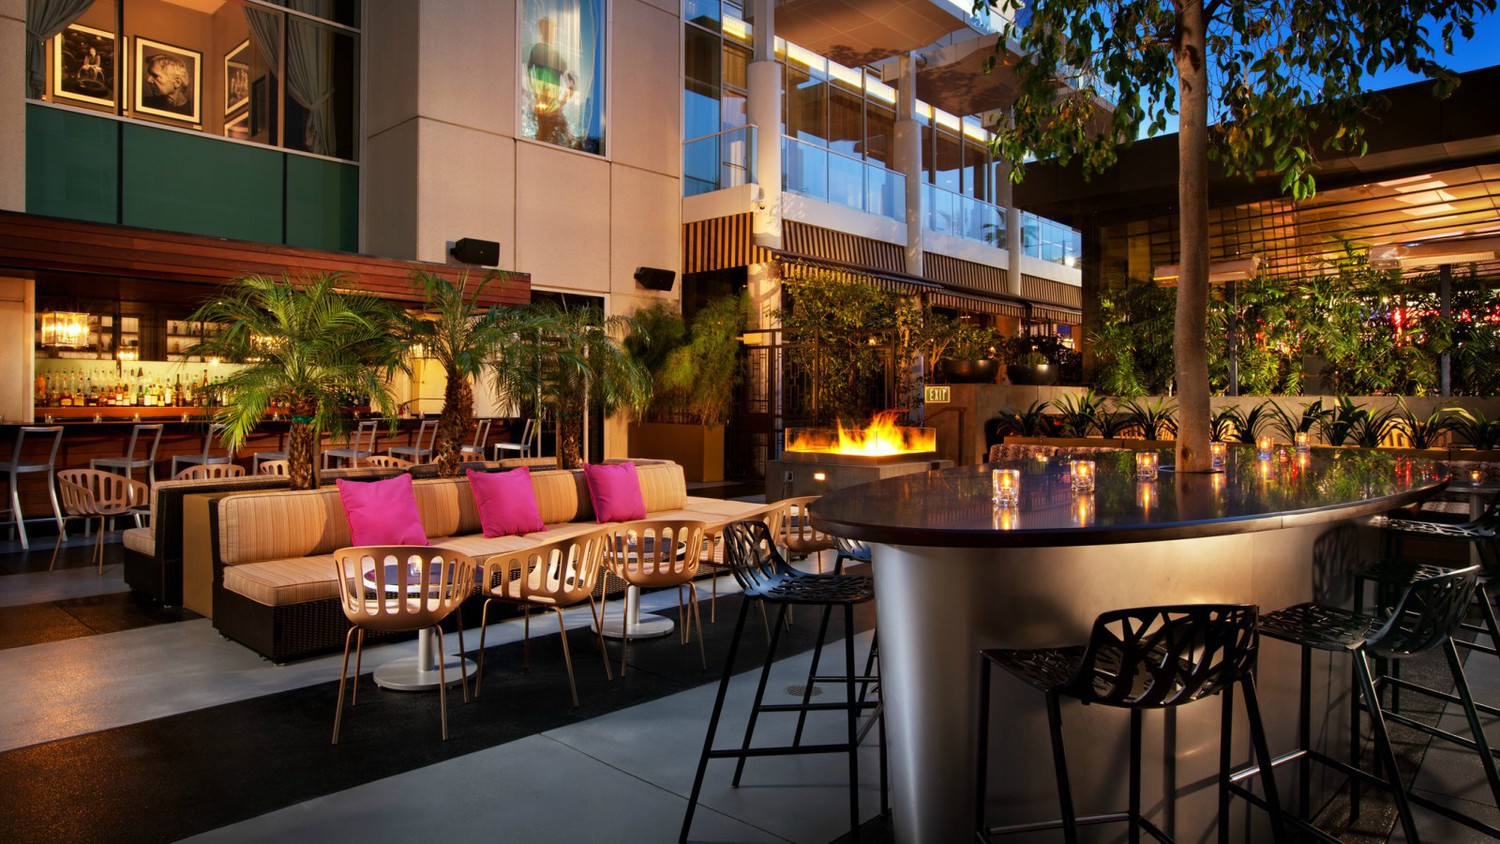 Hollywood restaurants los angeles ca jobs hospitality for Living room 6250 hollywood blvd